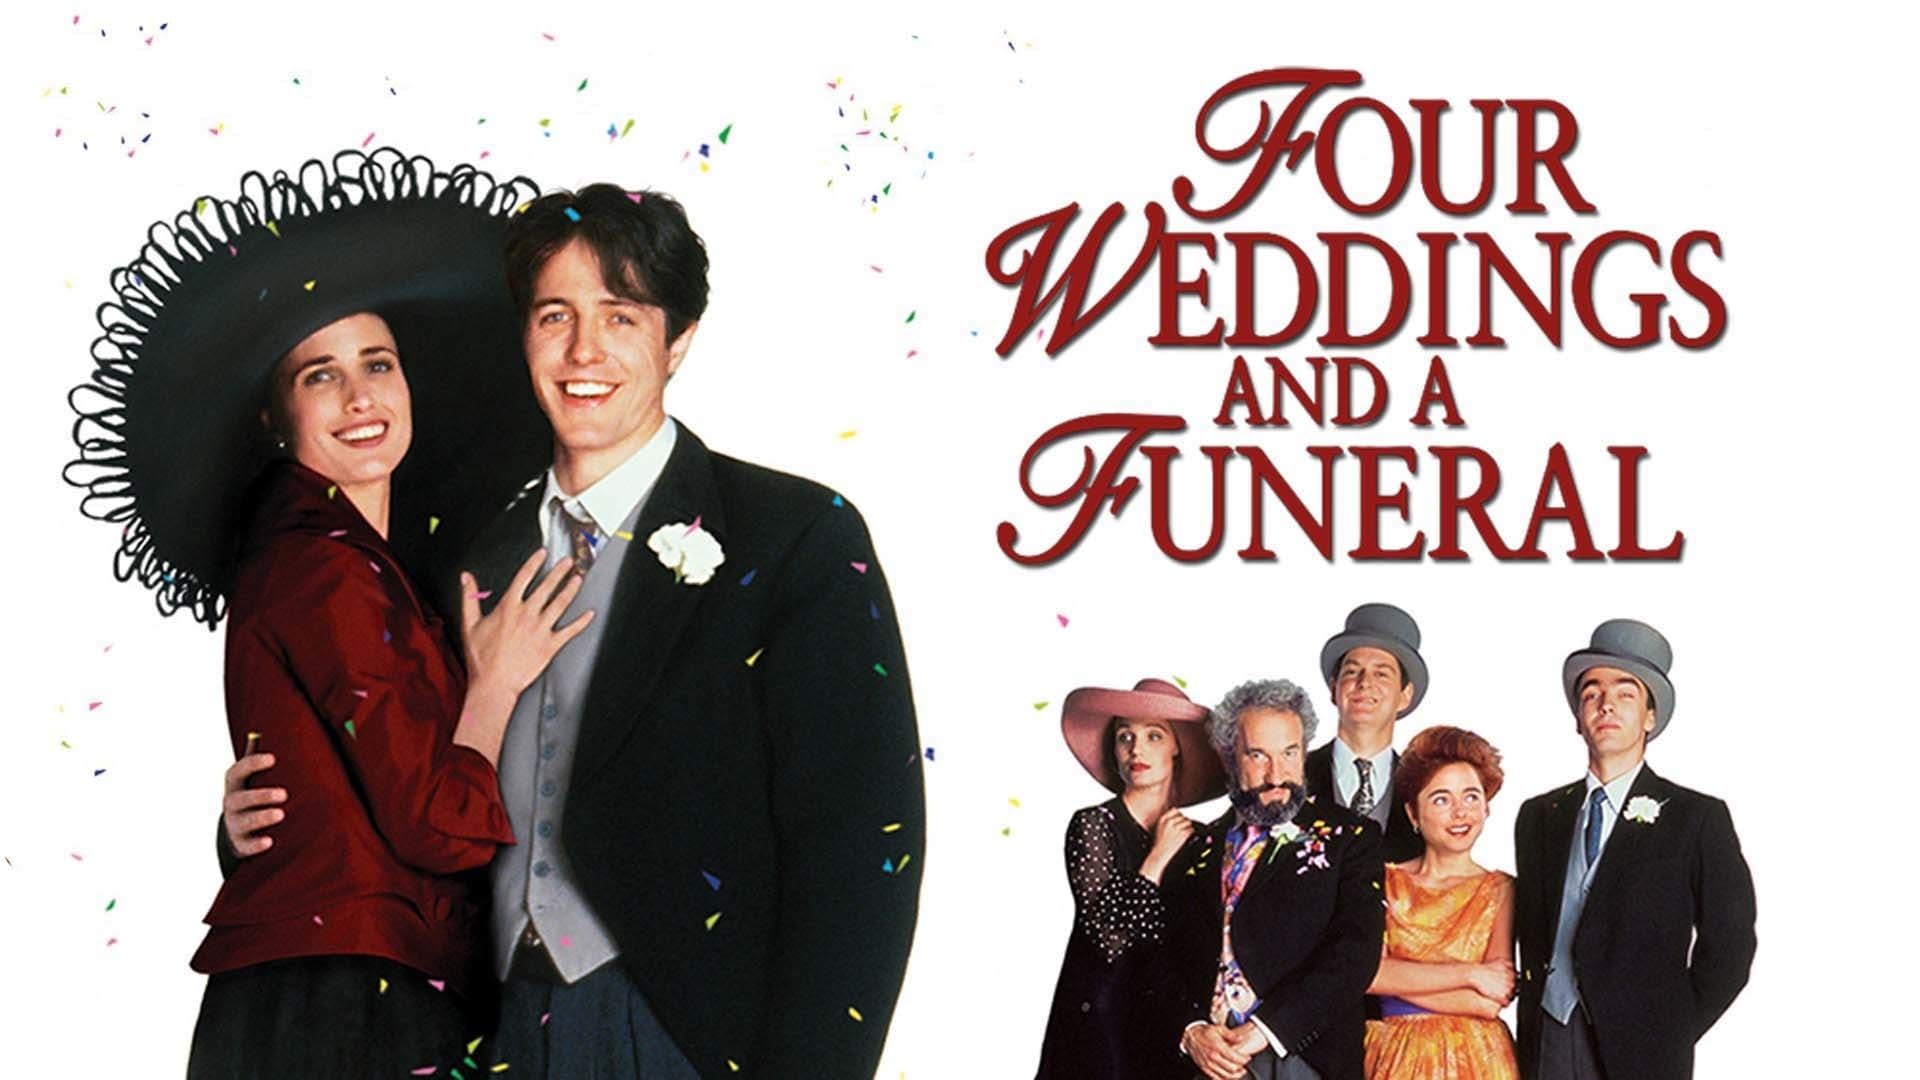 Four Weddings And A Funeral Gallery: Four Weddings And A Funeral (1994) 123 Movies Online